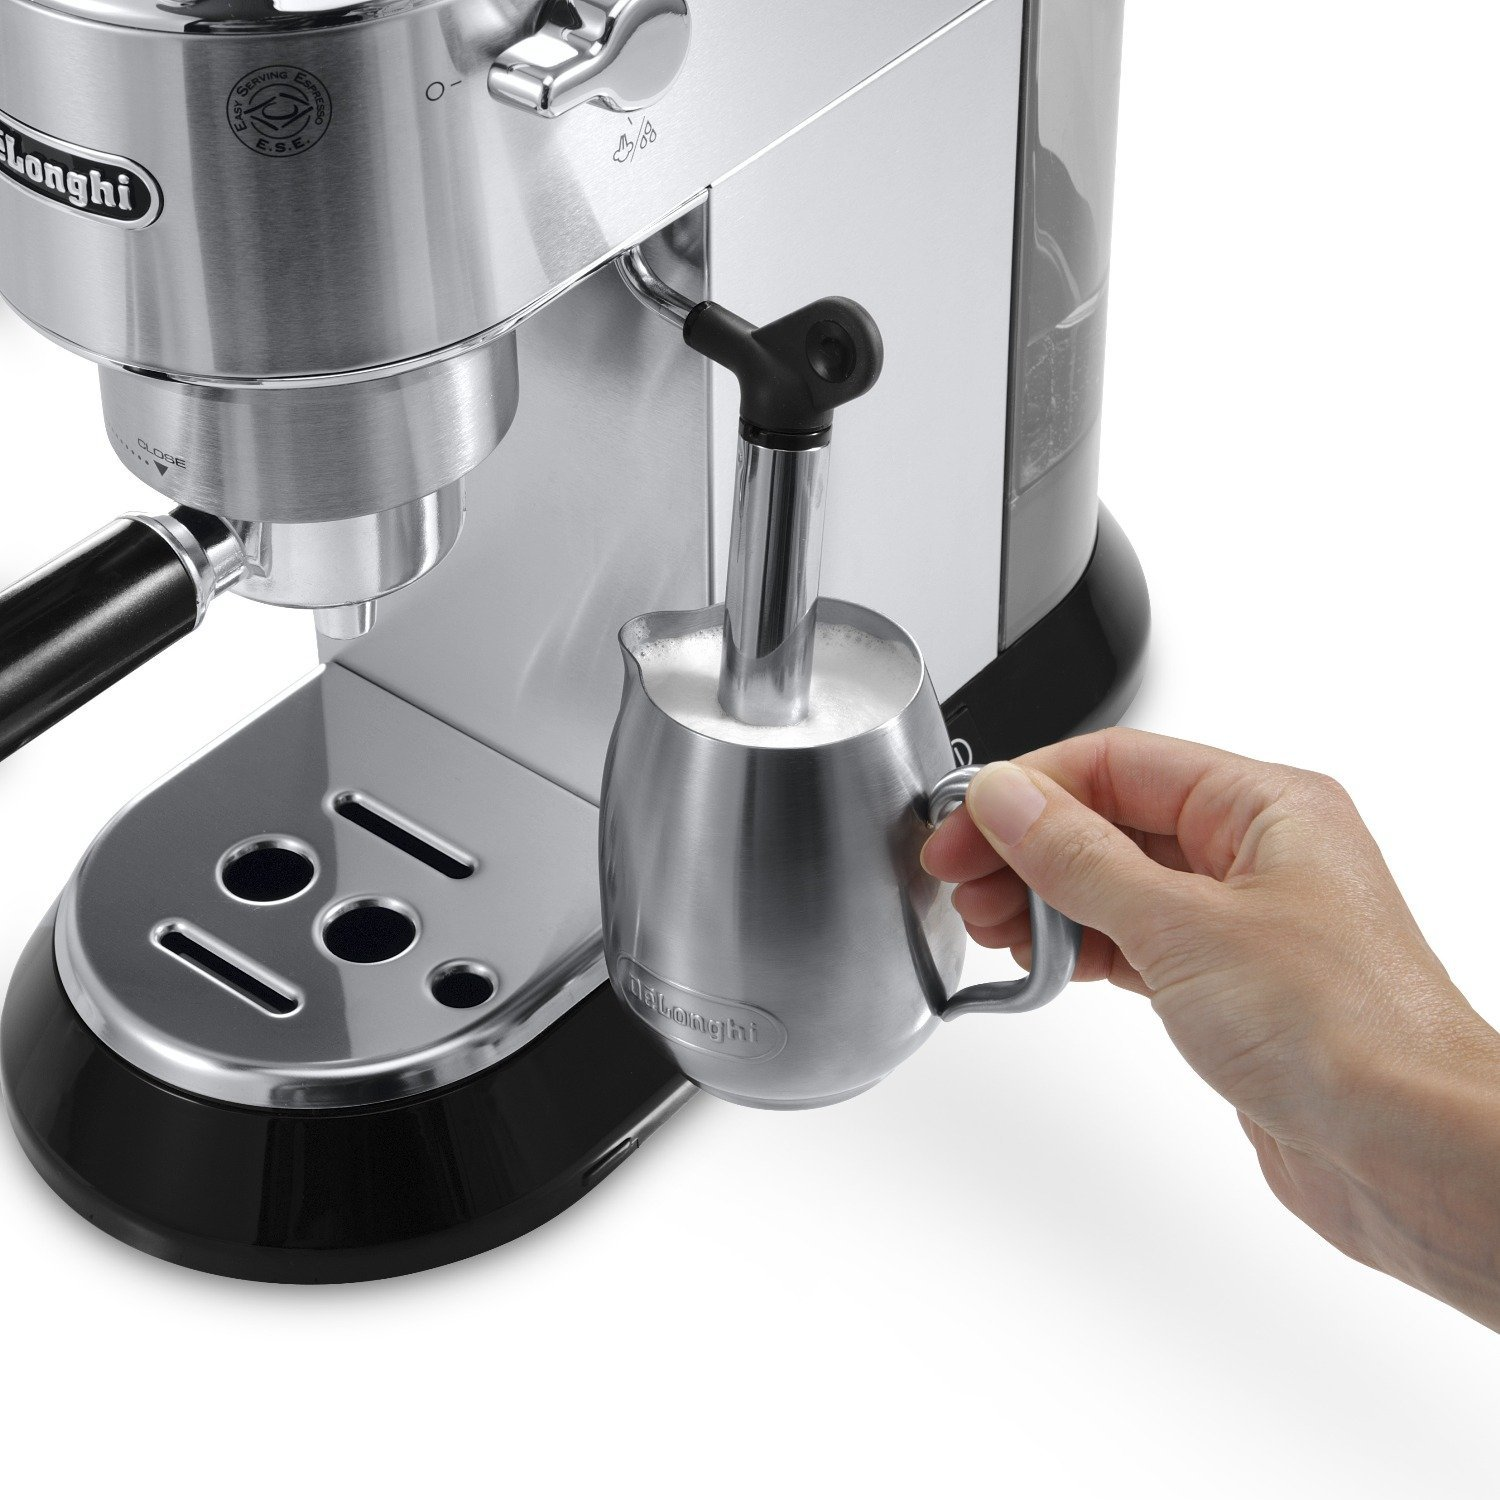 Best Espresso Maker Review